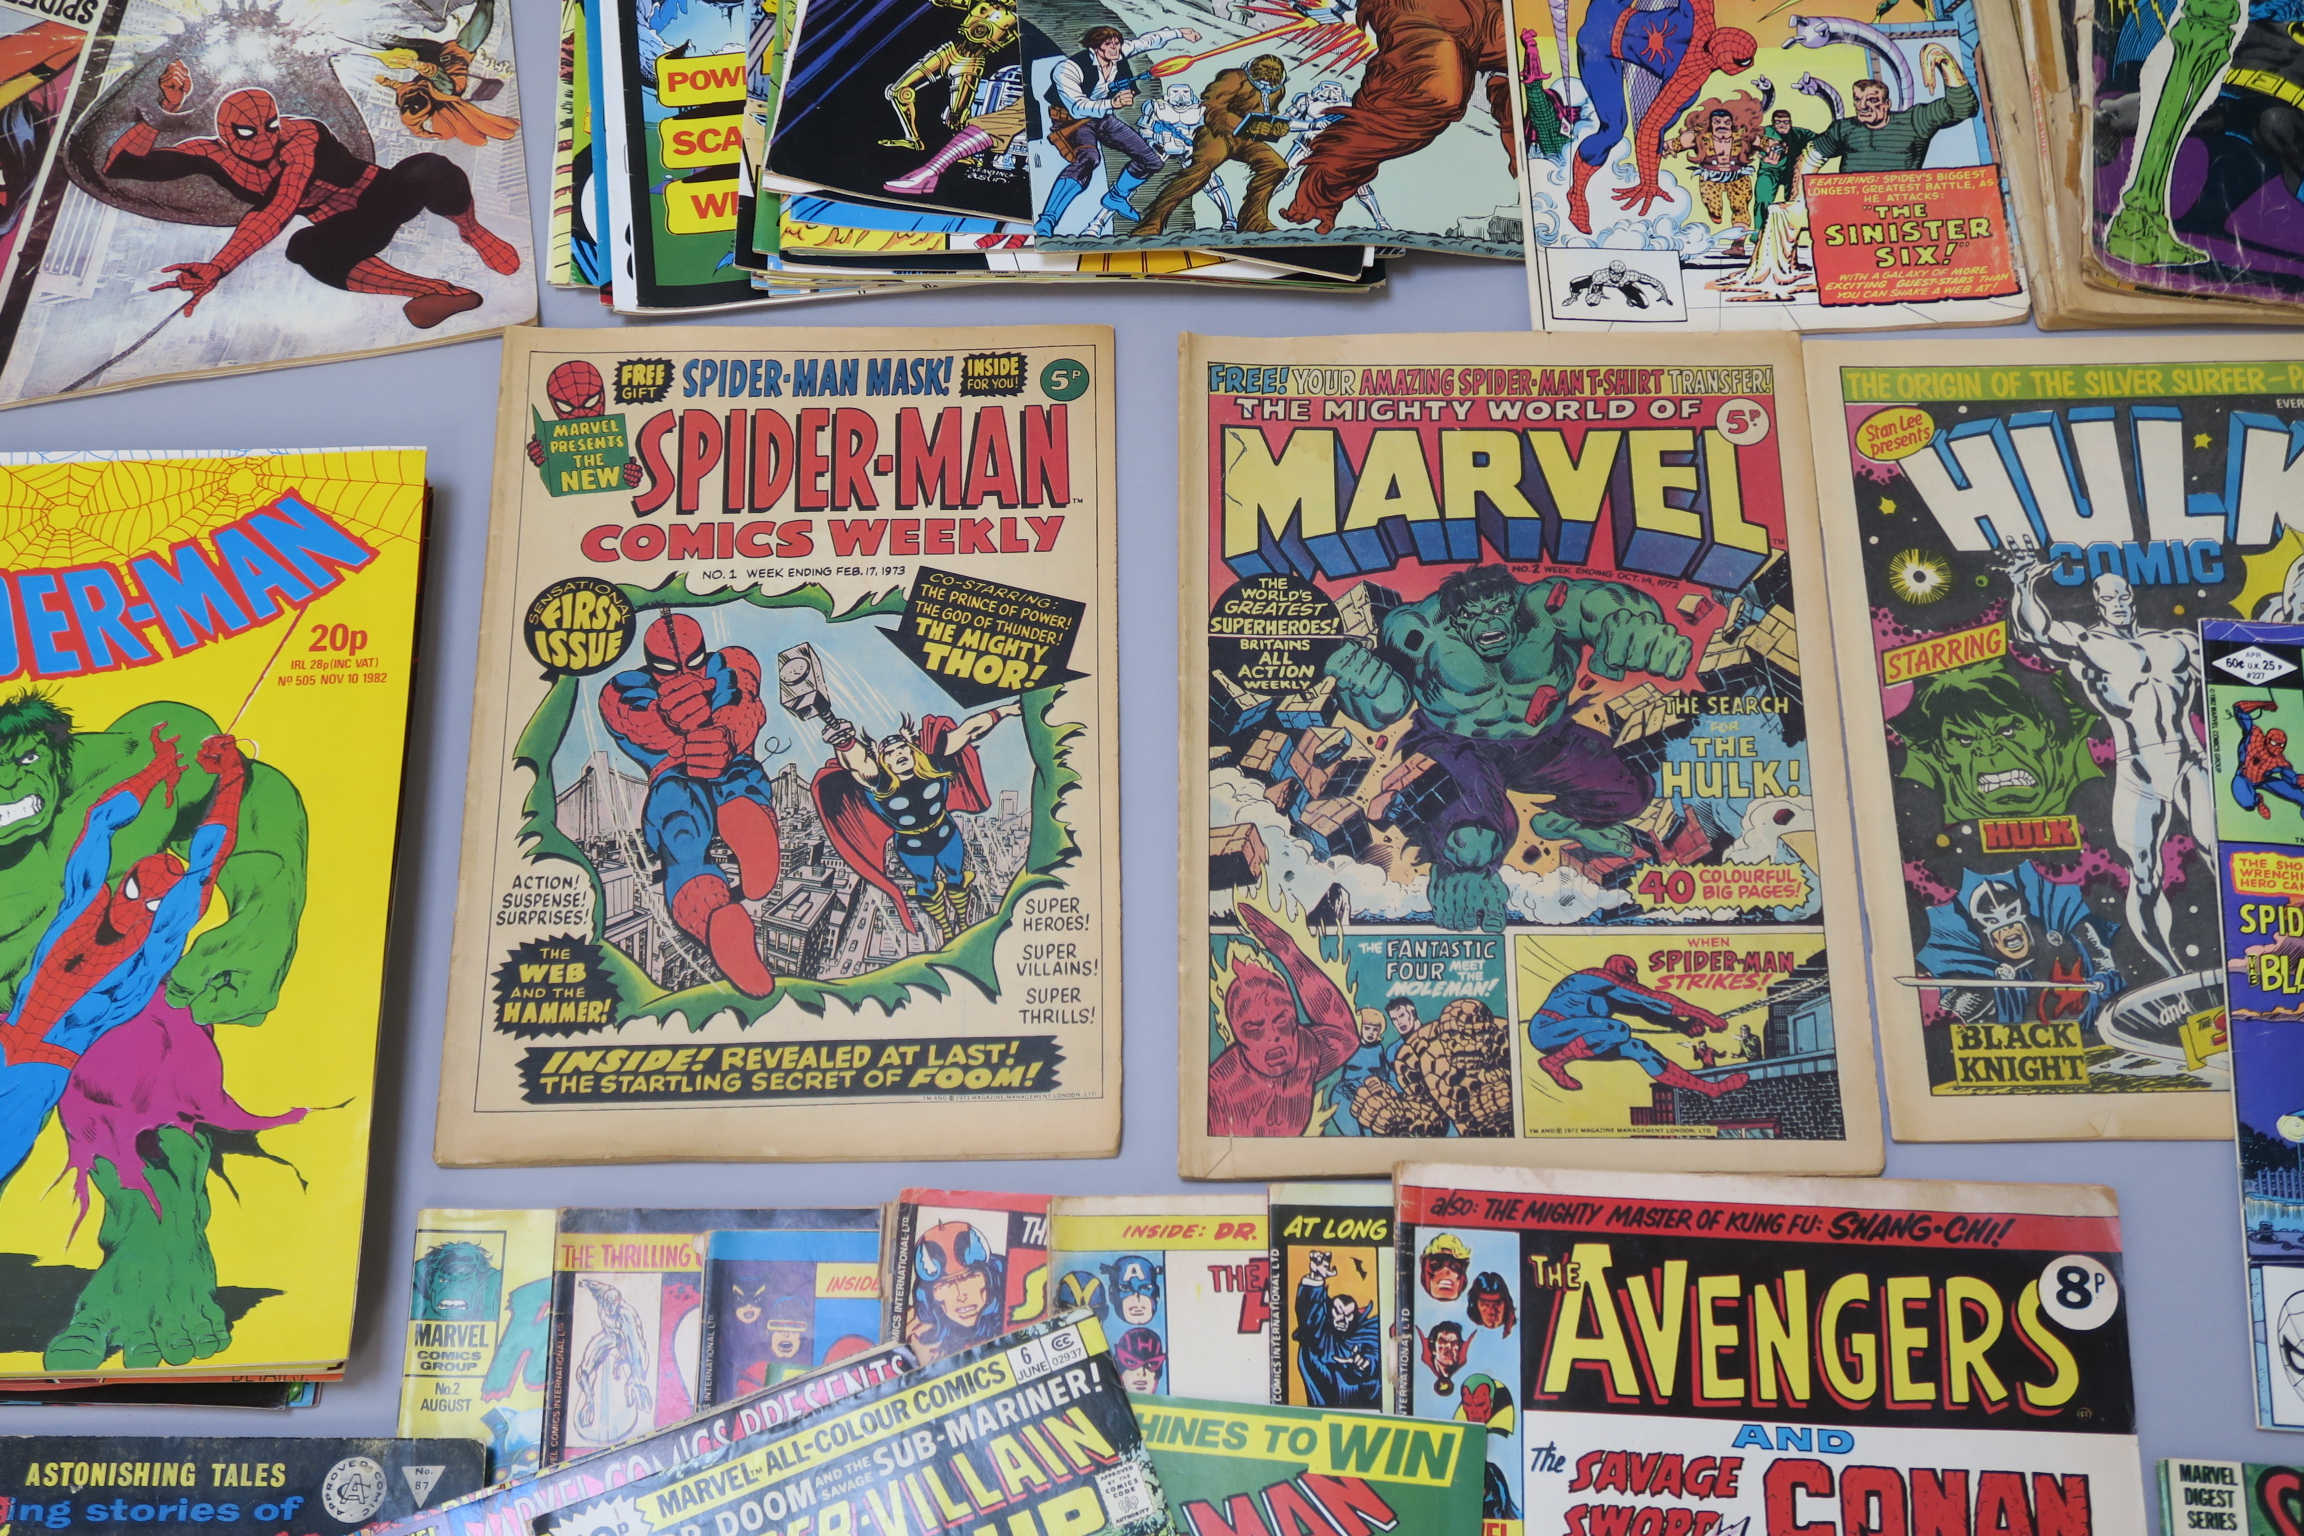 Lot 266 - Collection of vintage Marvel UK & US comic books including UK - Spider-man Comics Weekly no 1,